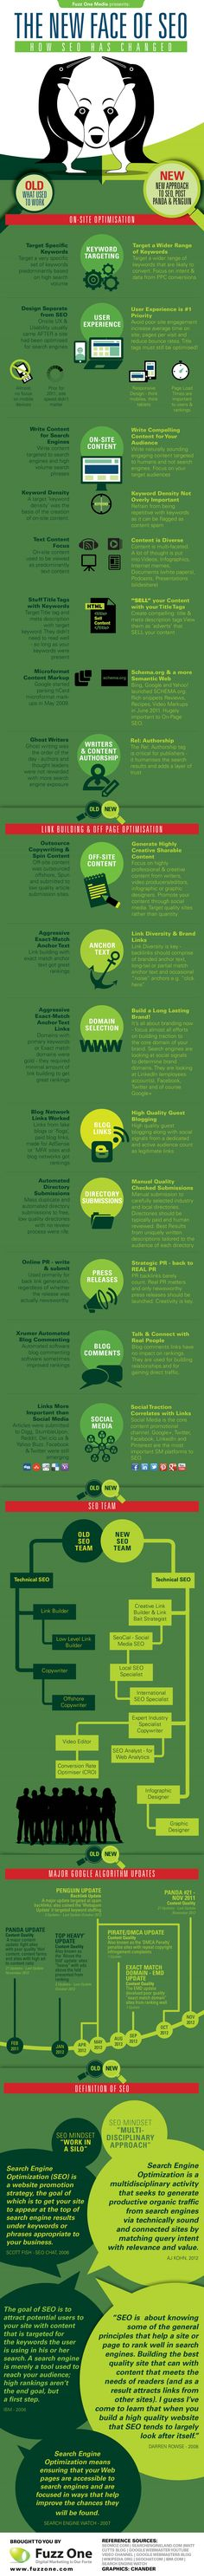 The New Face of SEO [Infographic]